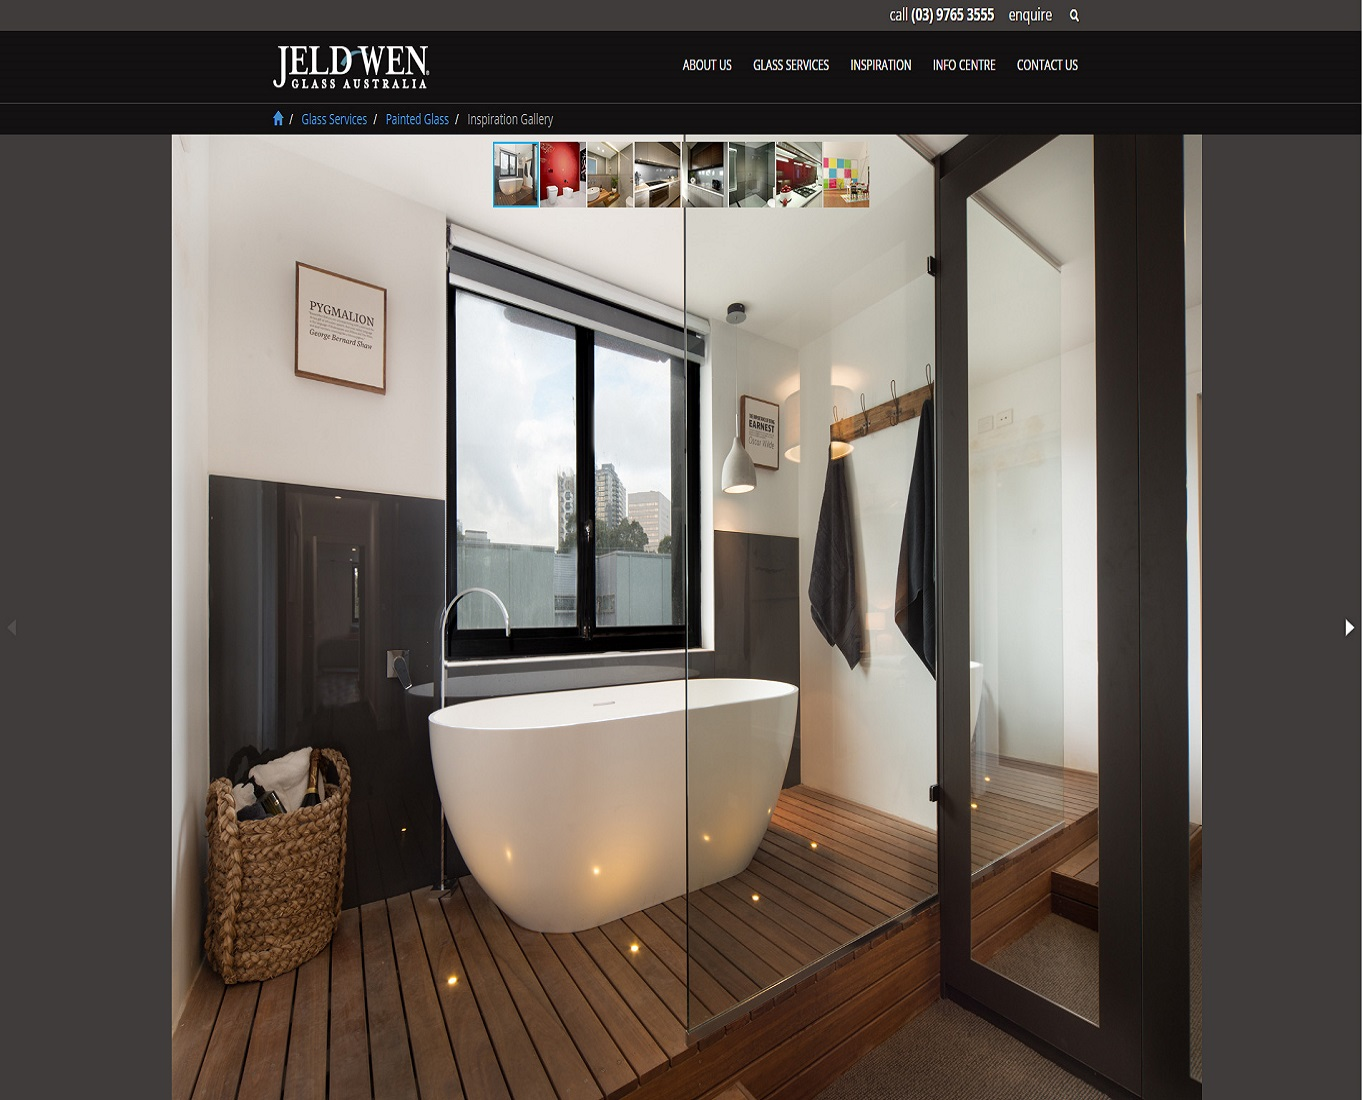 Check out New JELD-WEN Glass Website - Painted Glass Inspiration Gallery to know how our web developers and web design Sydney team to help your online marketing, SEO, SEM, social marketing and web development.